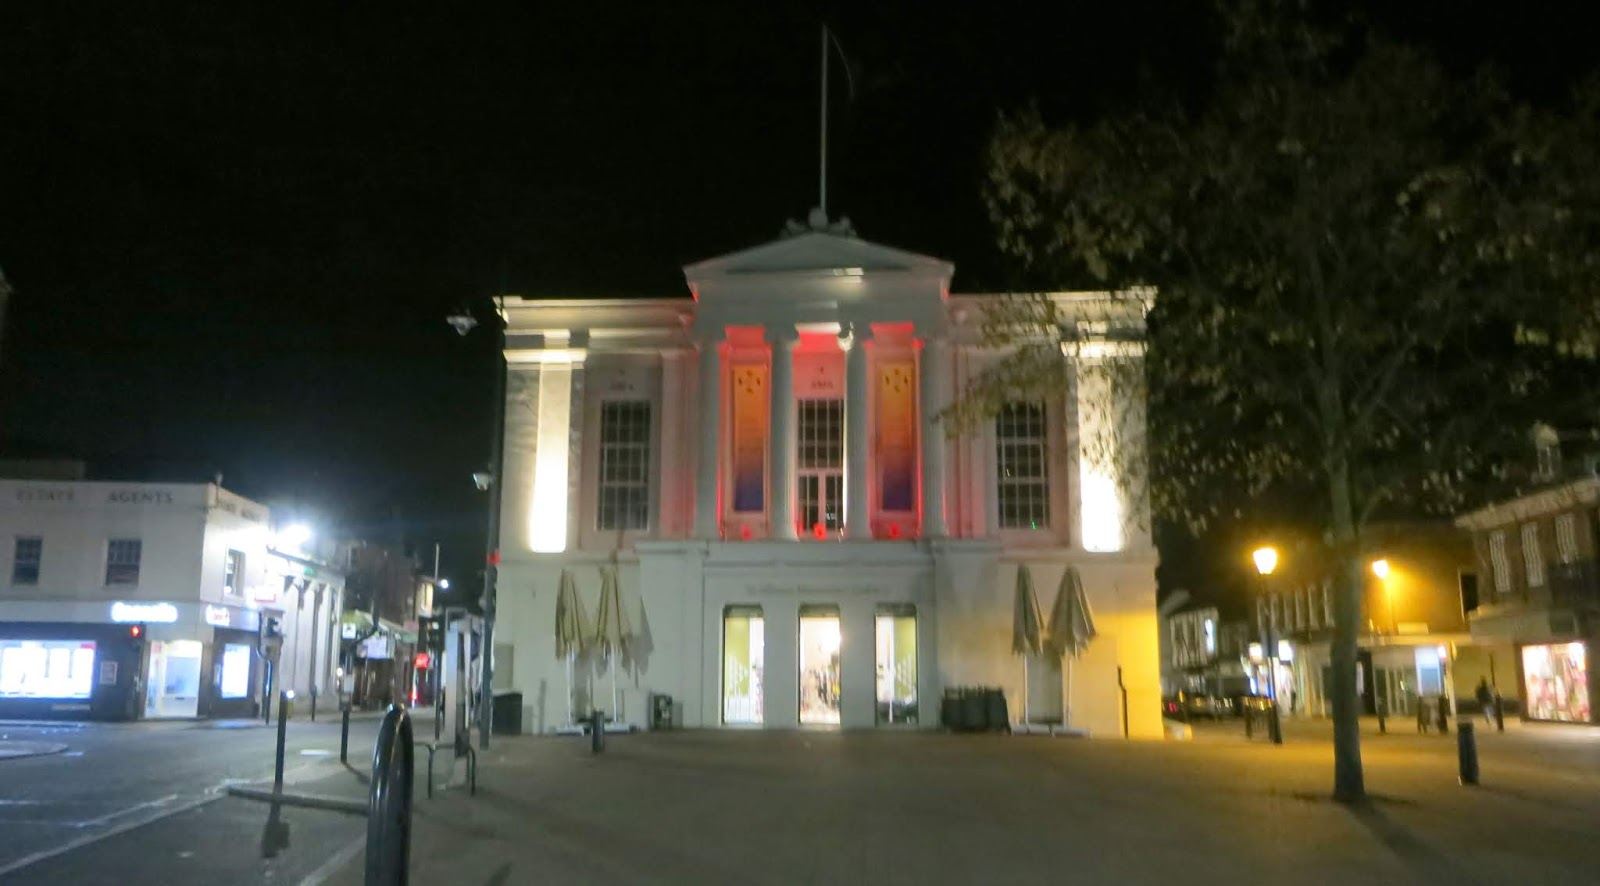 A Place Called Space: The Old Court House, St Albans